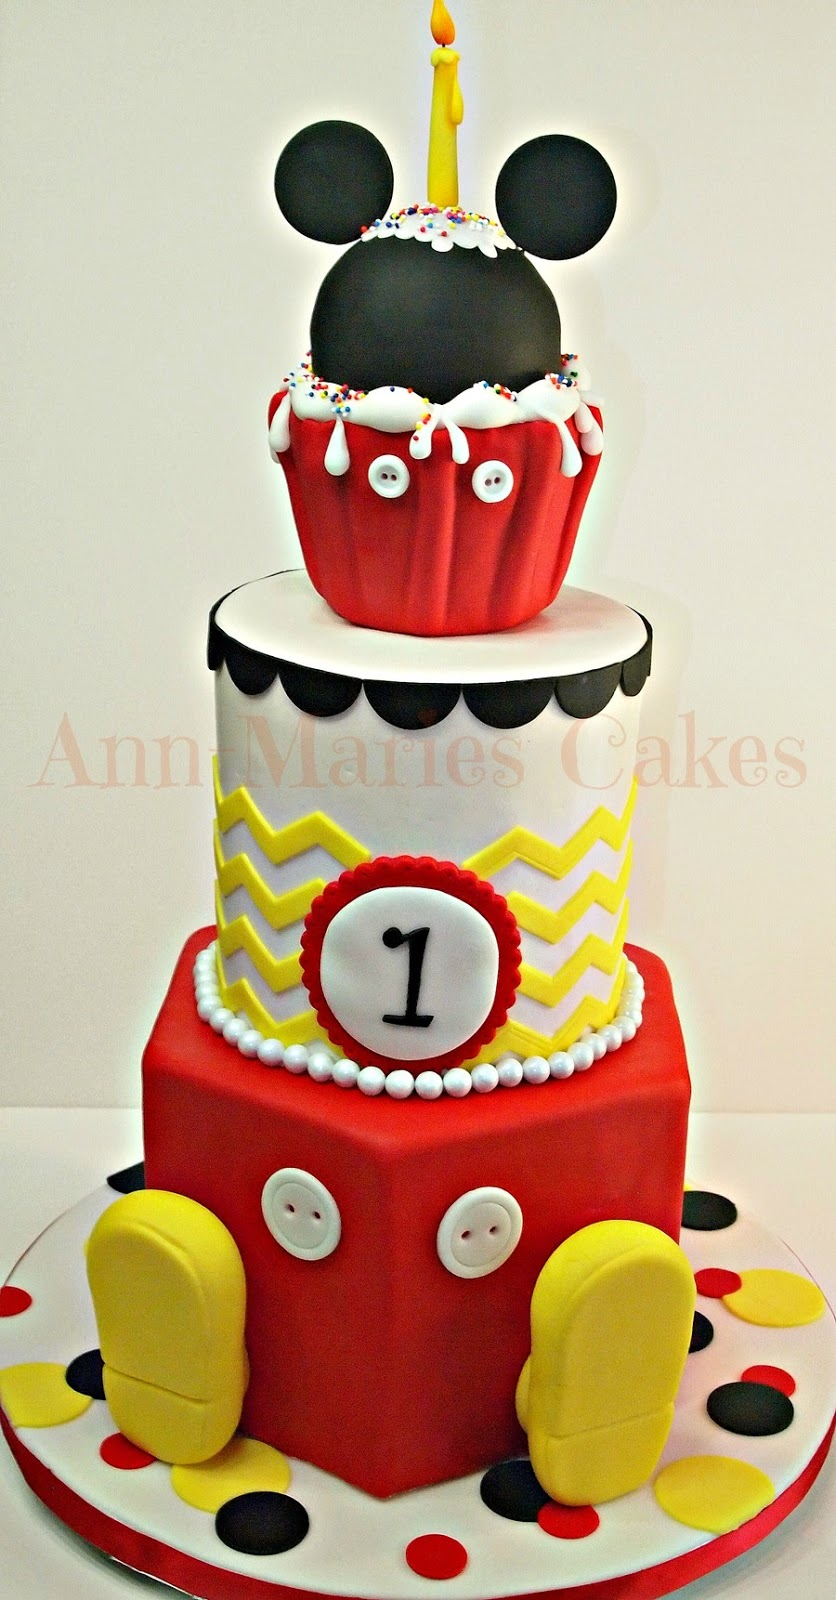 Cake Images Of Mickey Mouse : The Sensational Cakes: MICKEY AND MINNIE THEME BIRTHDAY ...